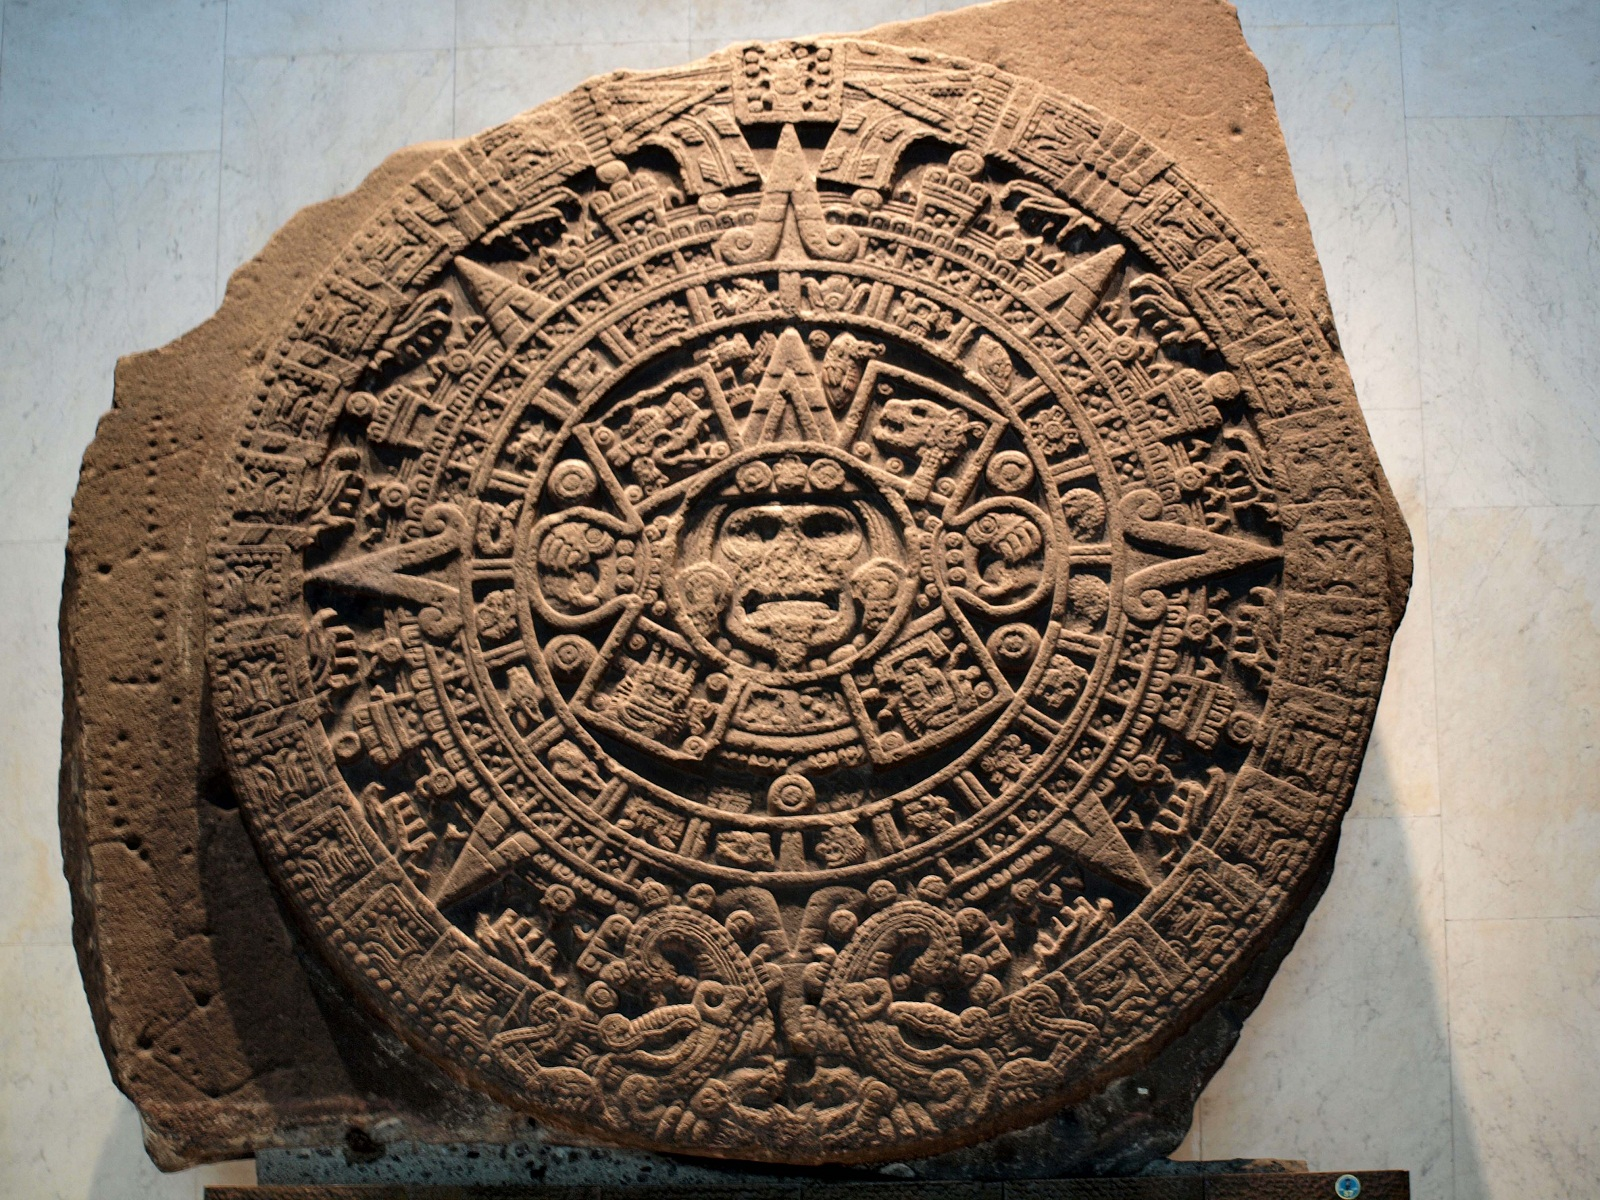 National Museum of Anthropology, Mexico City, Aztec calendar